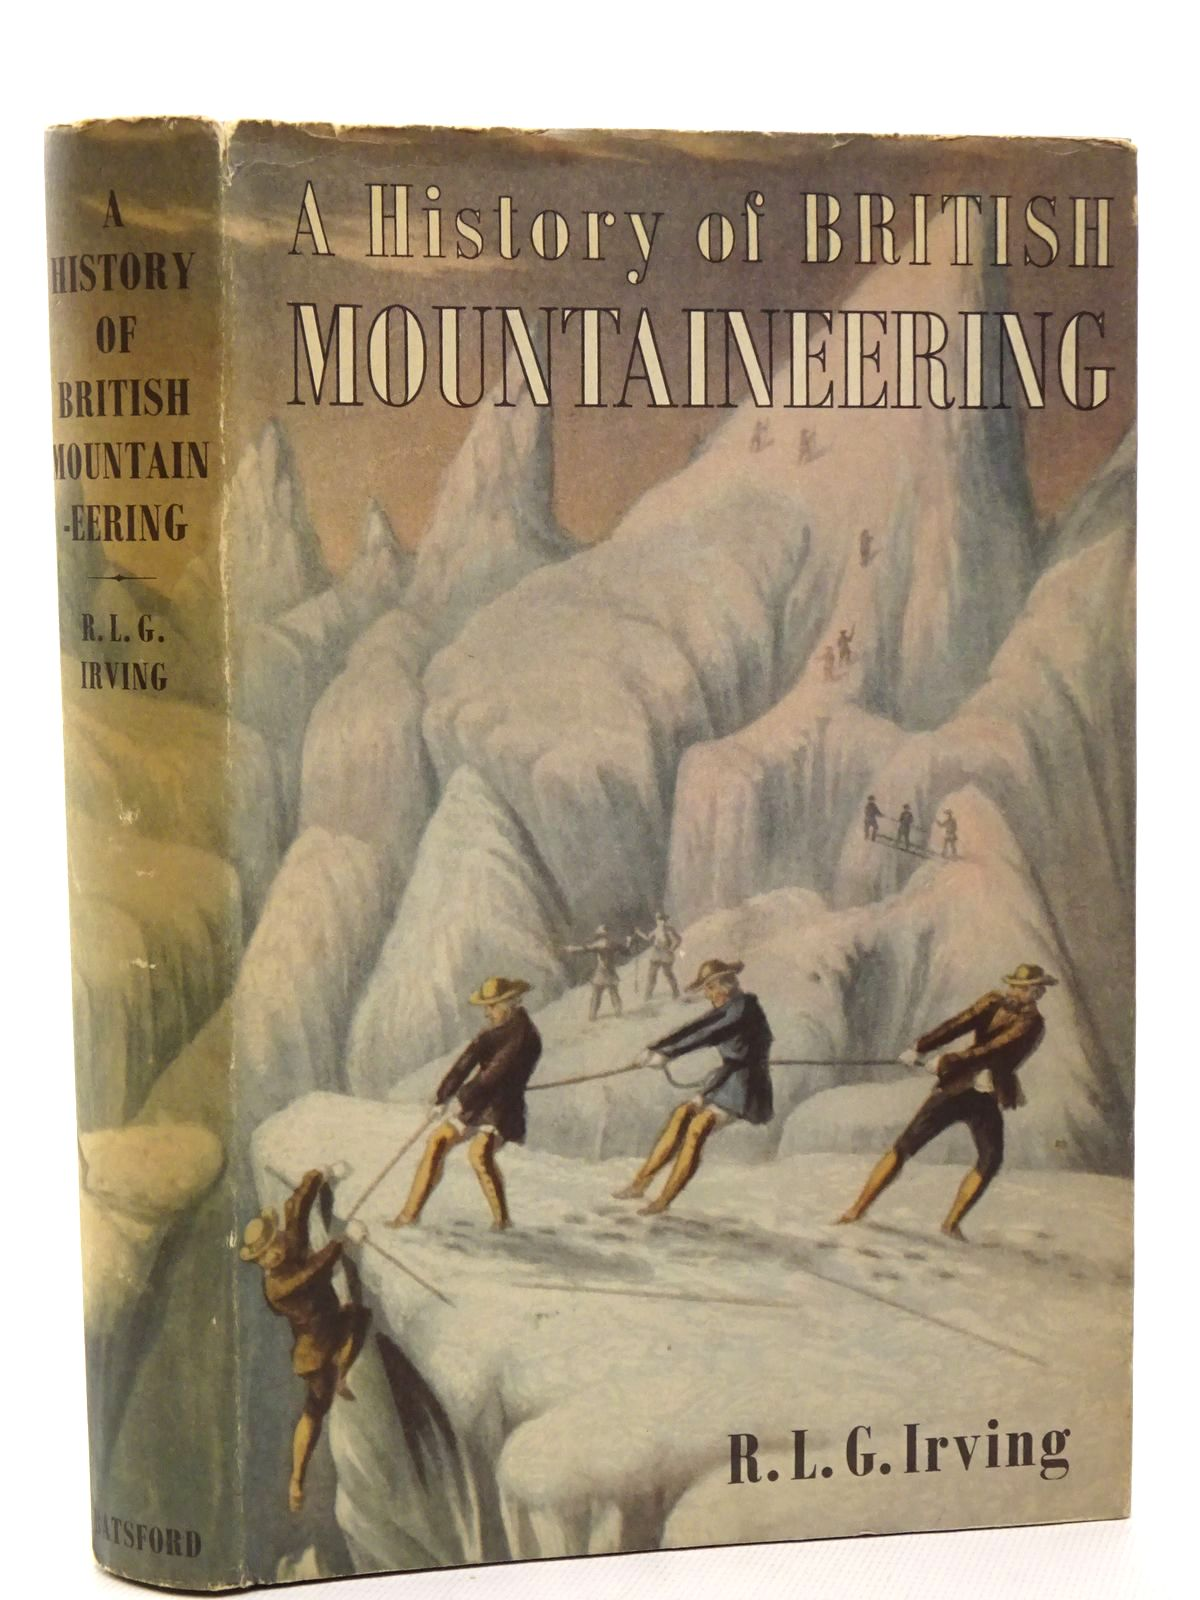 Photo of A HISTORY OF BRITISH MOUNTAINEERING written by Irving, R.L.G. published by B.T. Batsford Ltd. (STOCK CODE: 1815744)  for sale by Stella & Rose's Books